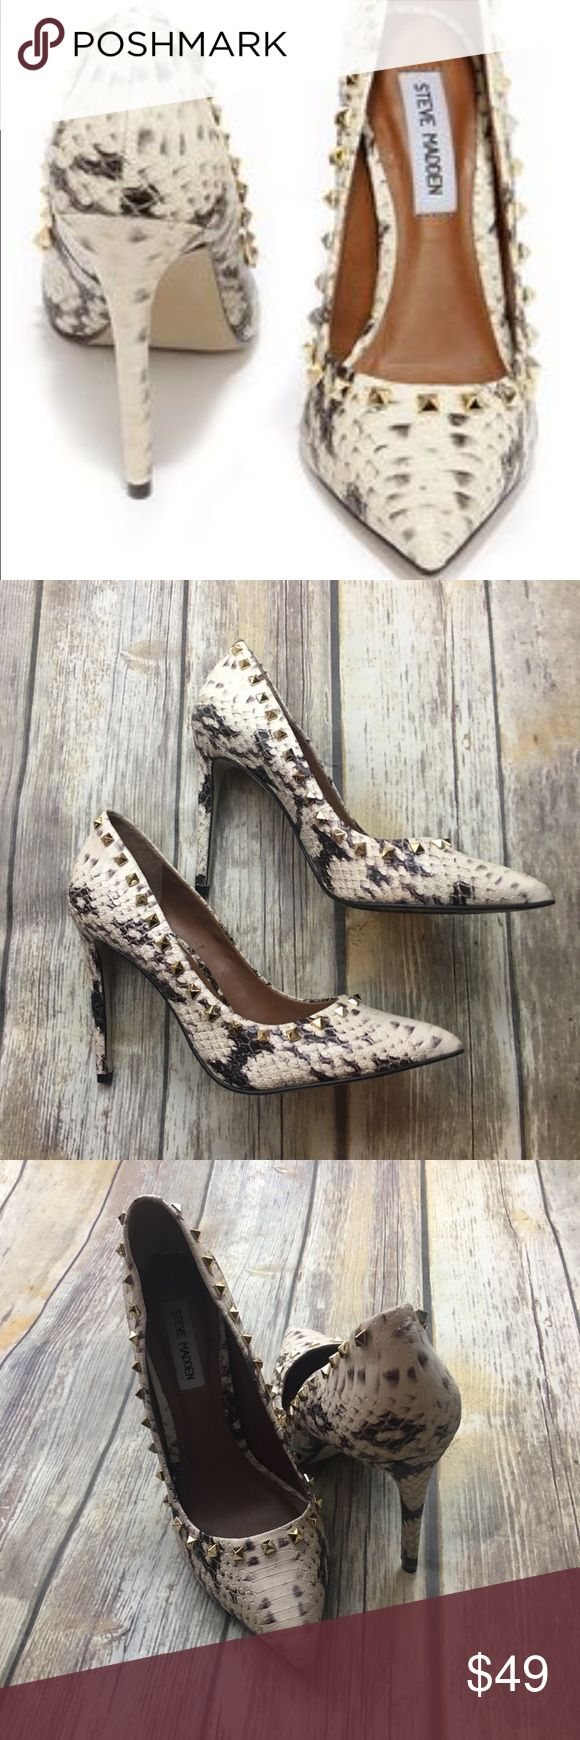 🎈 Steve Madden Crocodile Print With Studs Heels Crocodile print with stud pointy heels. In excellent used condition normal wear. Size 9 1/2. Does not come with original box. 5 inch heel. Steve Madden Shoes Heels